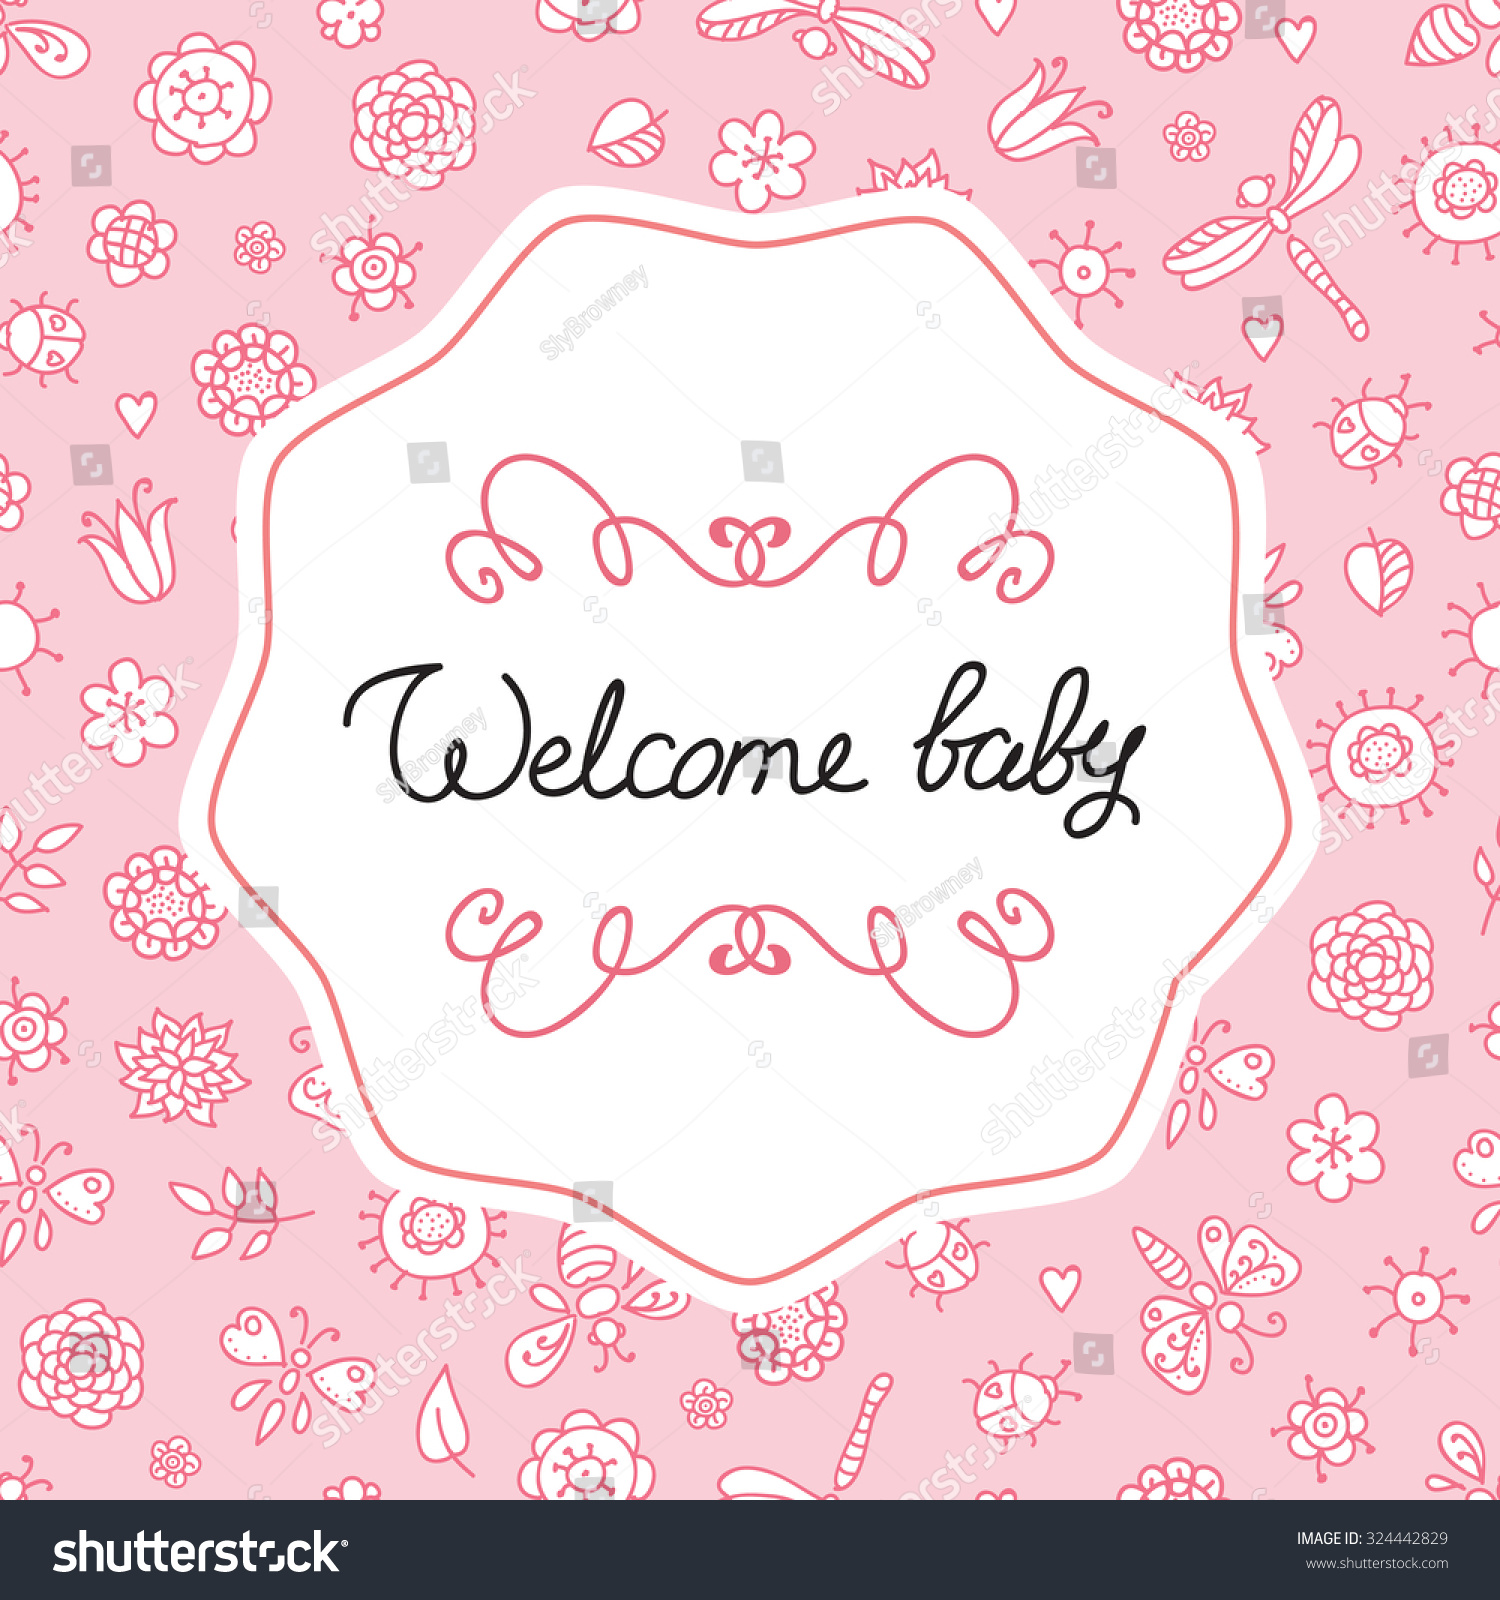 Welcome Baby Cute Baby Card Pink Stock Vector 324442829 ...